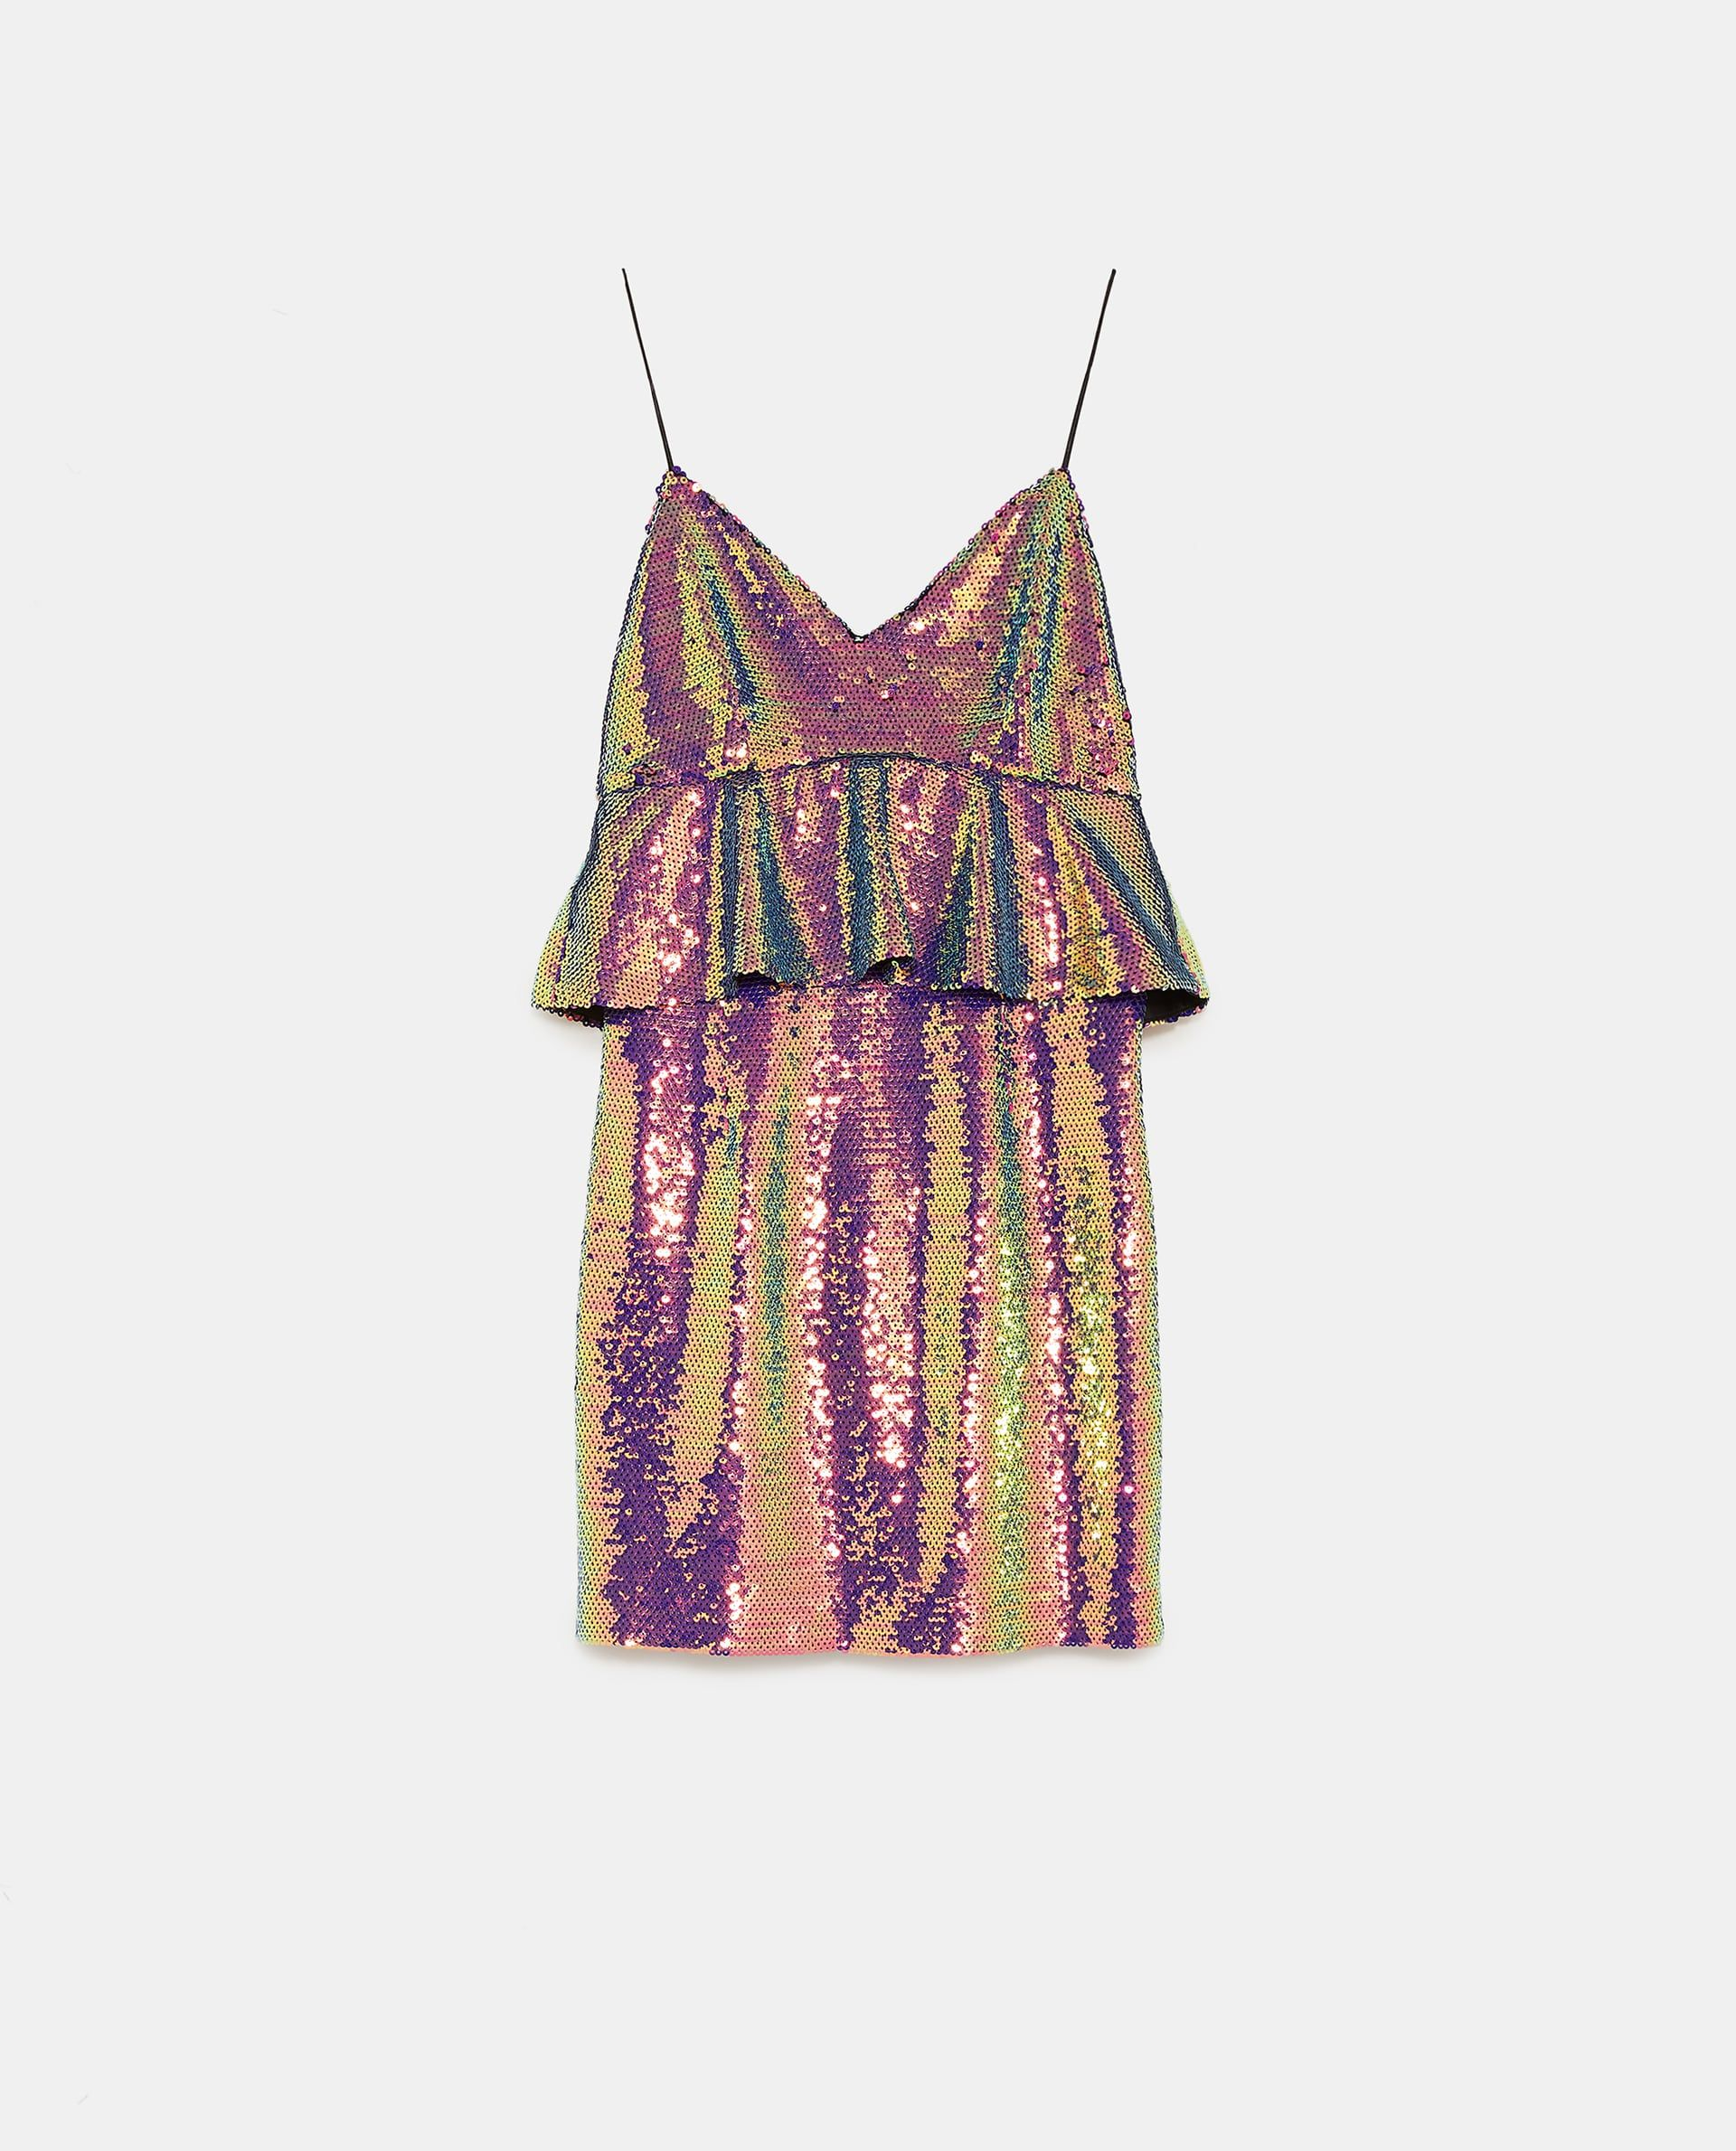 bdf19995dd MULTICOLOURED SEQUIN DRESS from Zara